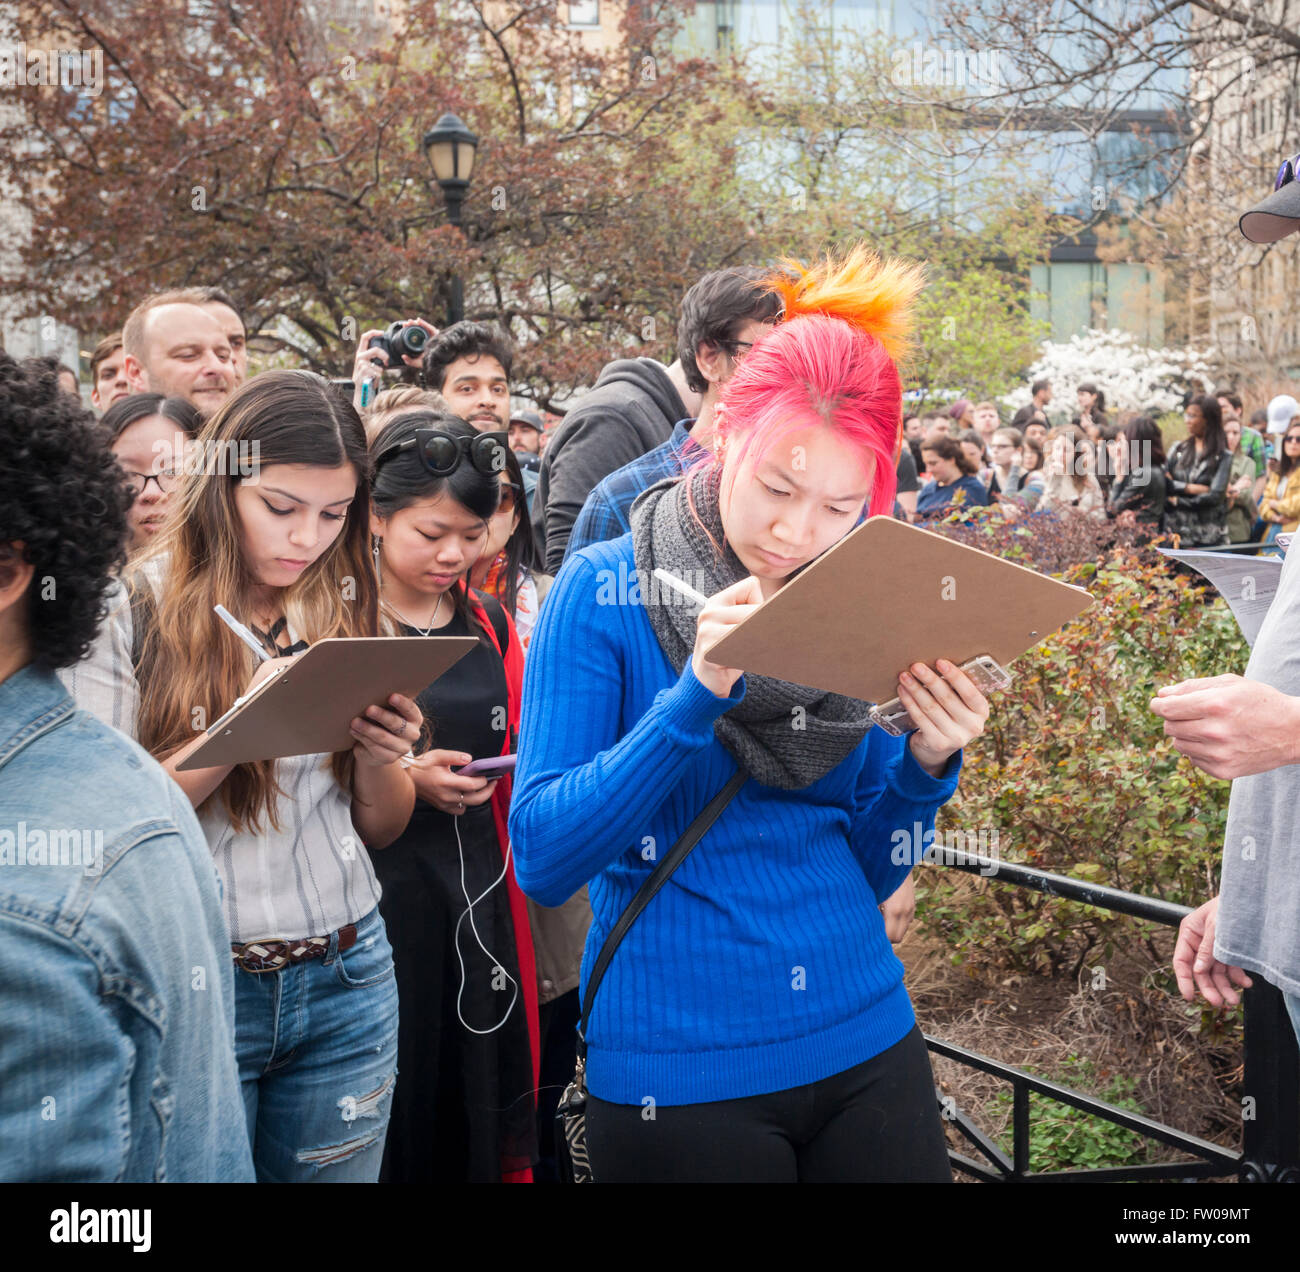 Union Square Park, New York, USA. 31st March, 2016. Bernie Sanders supporters sign up to volunteer for the campaign - Stock Image